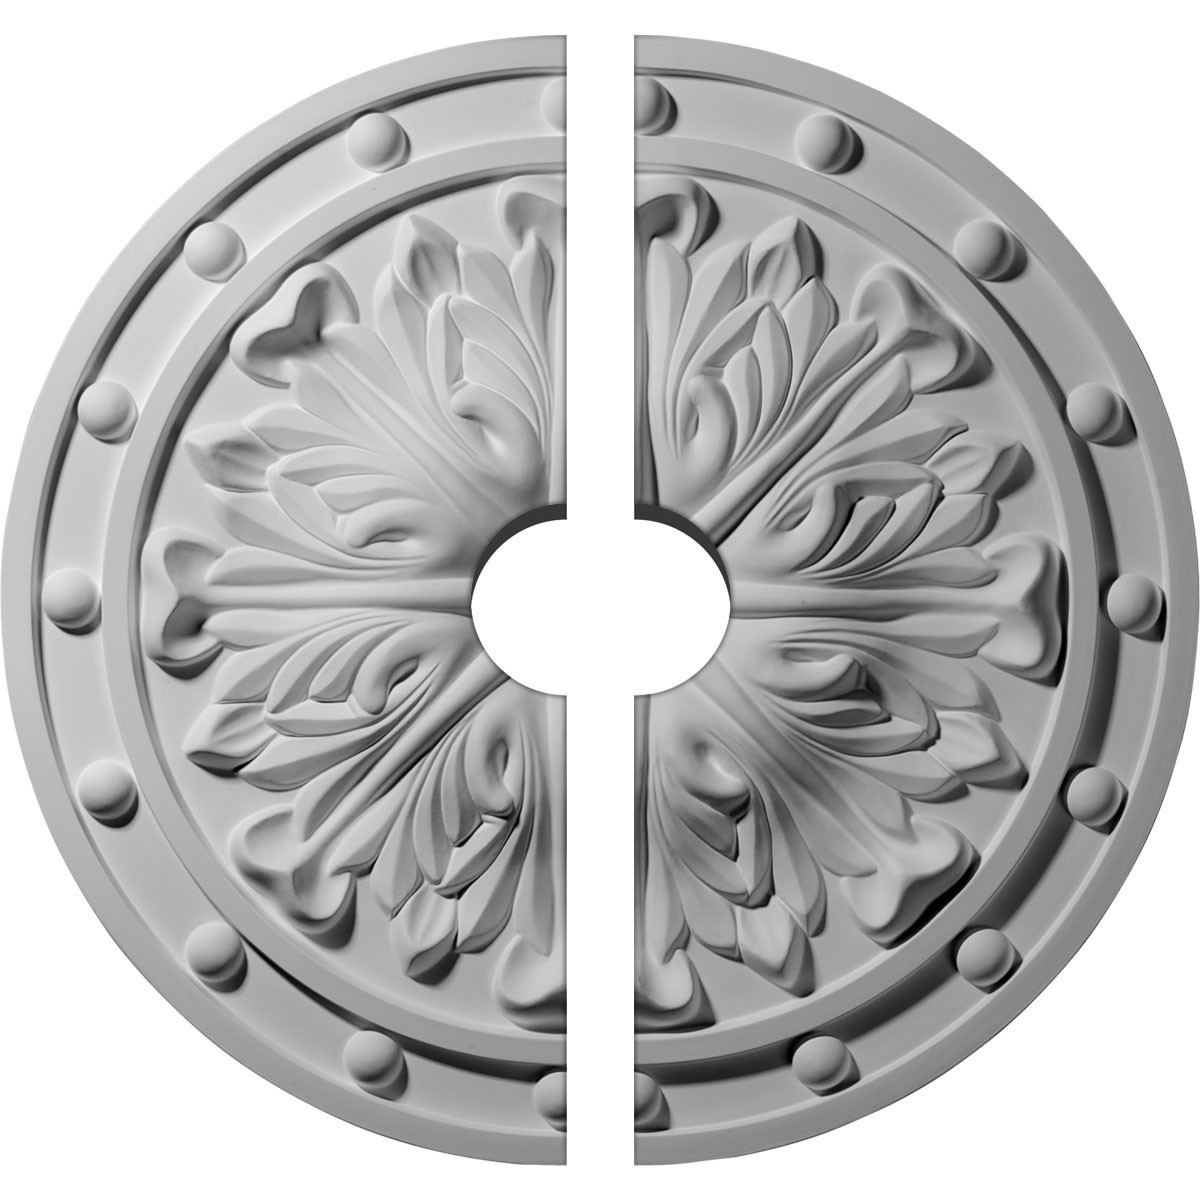 """EM-CM20FO2-03500 - 20 1/2""""OD x 3 1/2""""ID x 1 1/2""""P Foster Acanthus Leaf Ceiling Medallion, Two Piece (Fits Canopies up to 3 1/2"""")"""